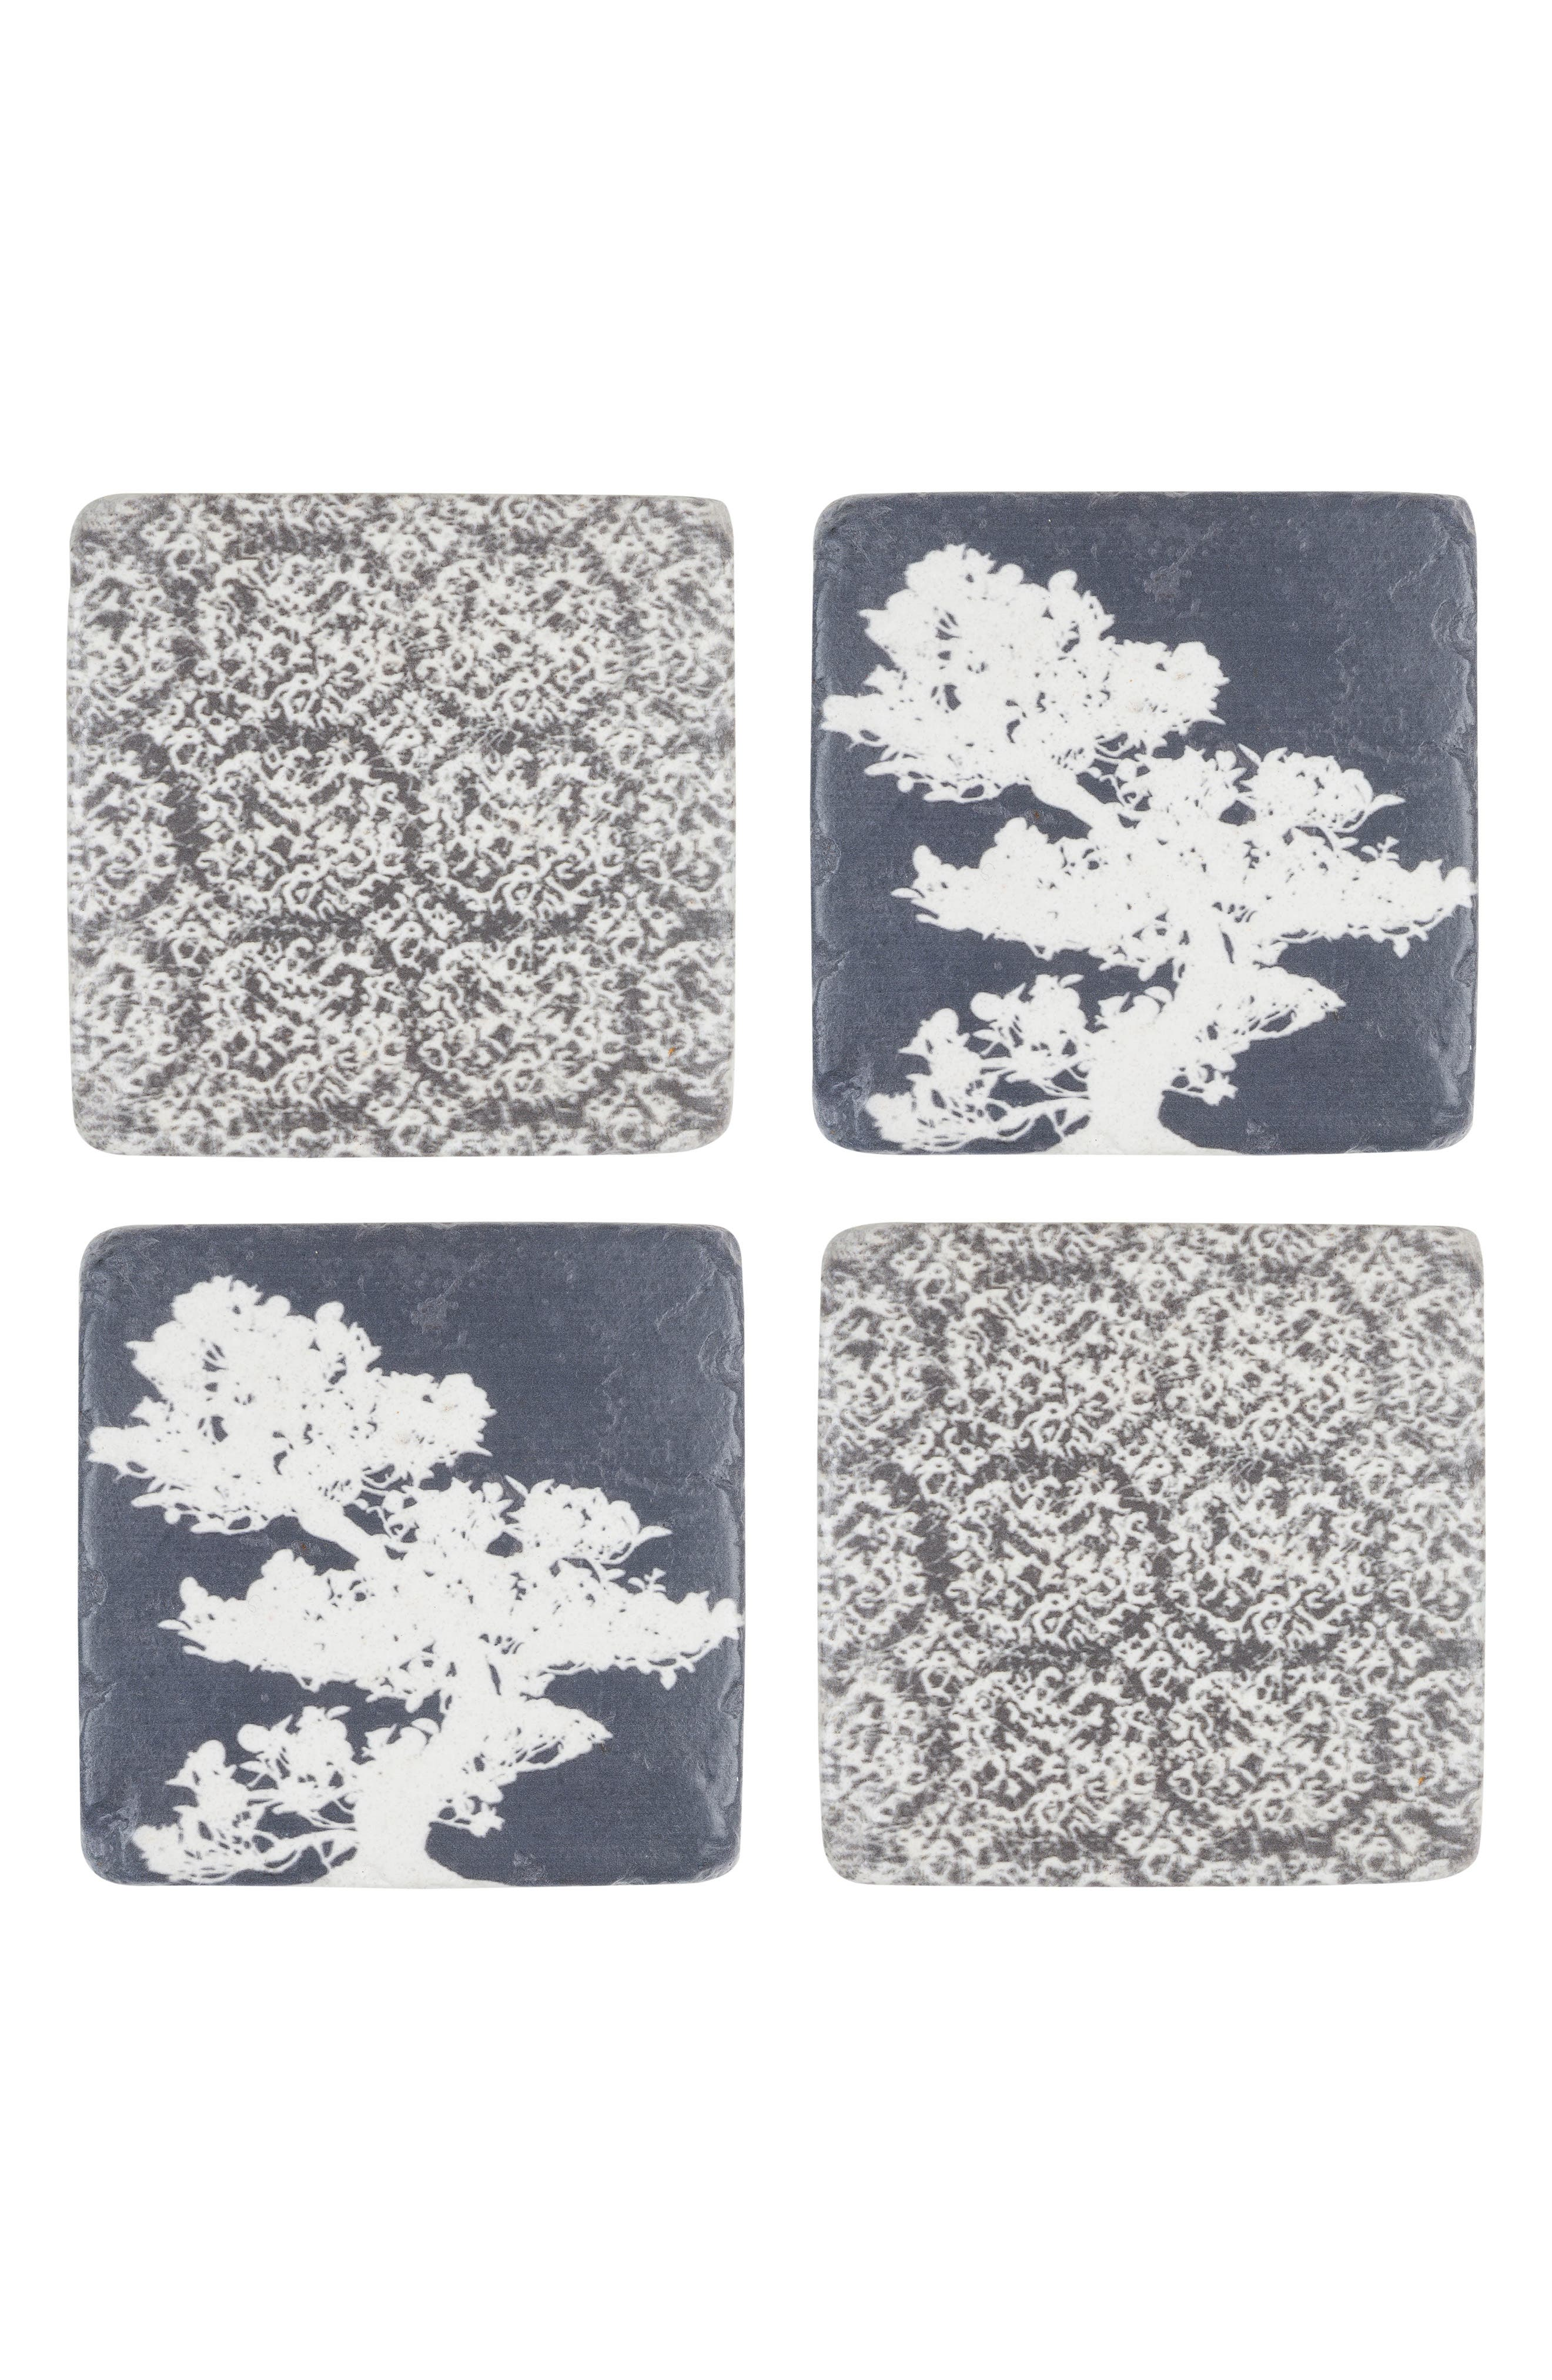 Eightmood Bonsai Set of 4 Resin Coasters